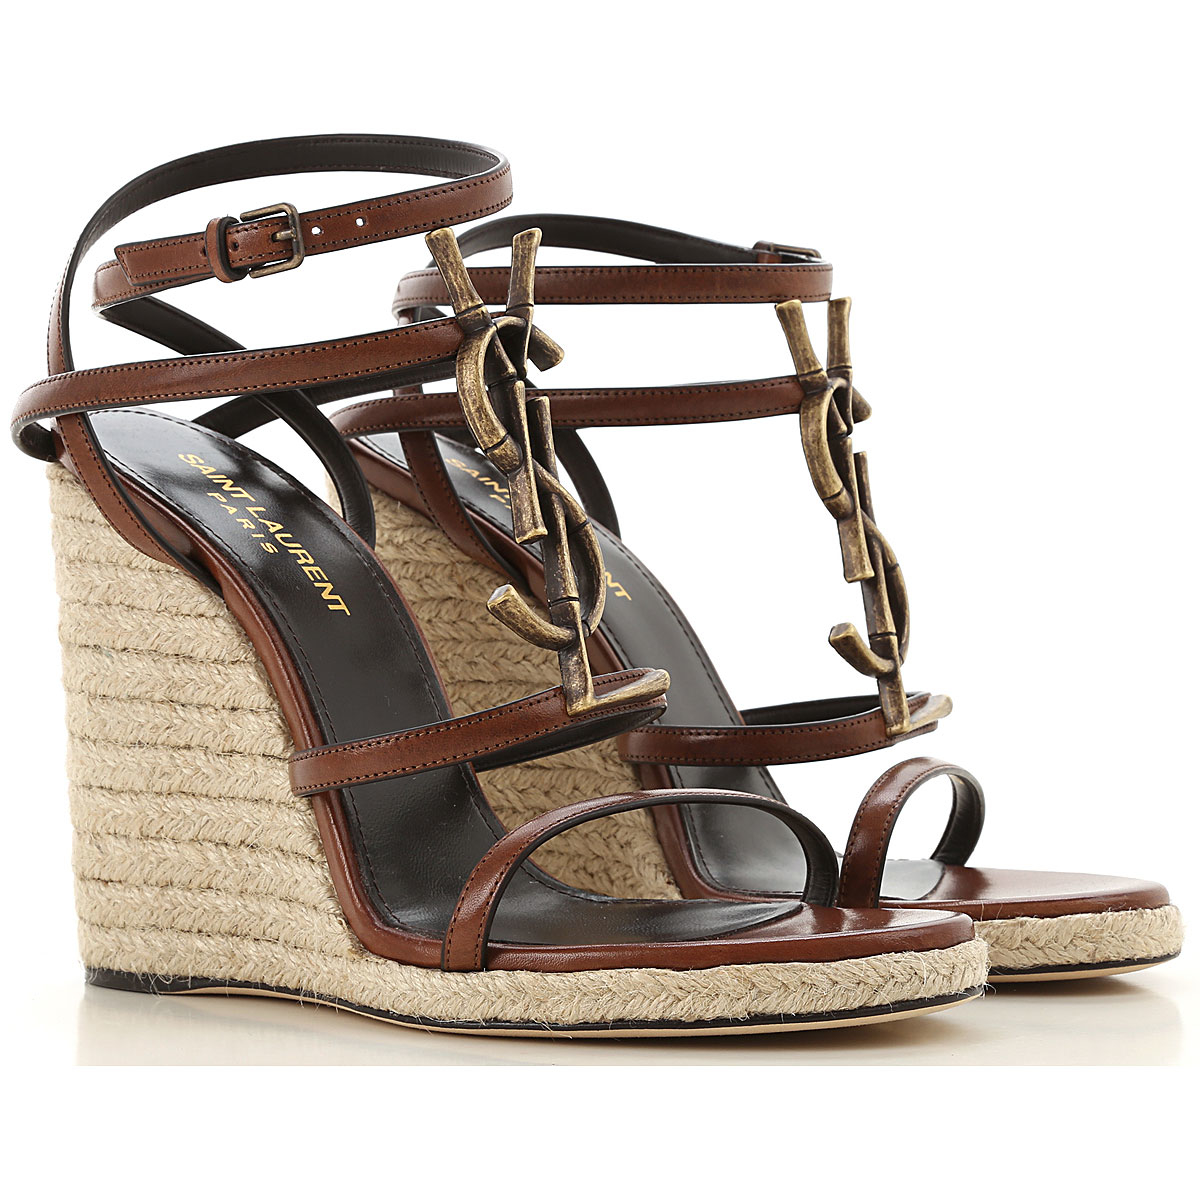 Yves Saint Laurent Wedges for Women Brown Canada - GOOFASH - Womens HOUSE SHOES